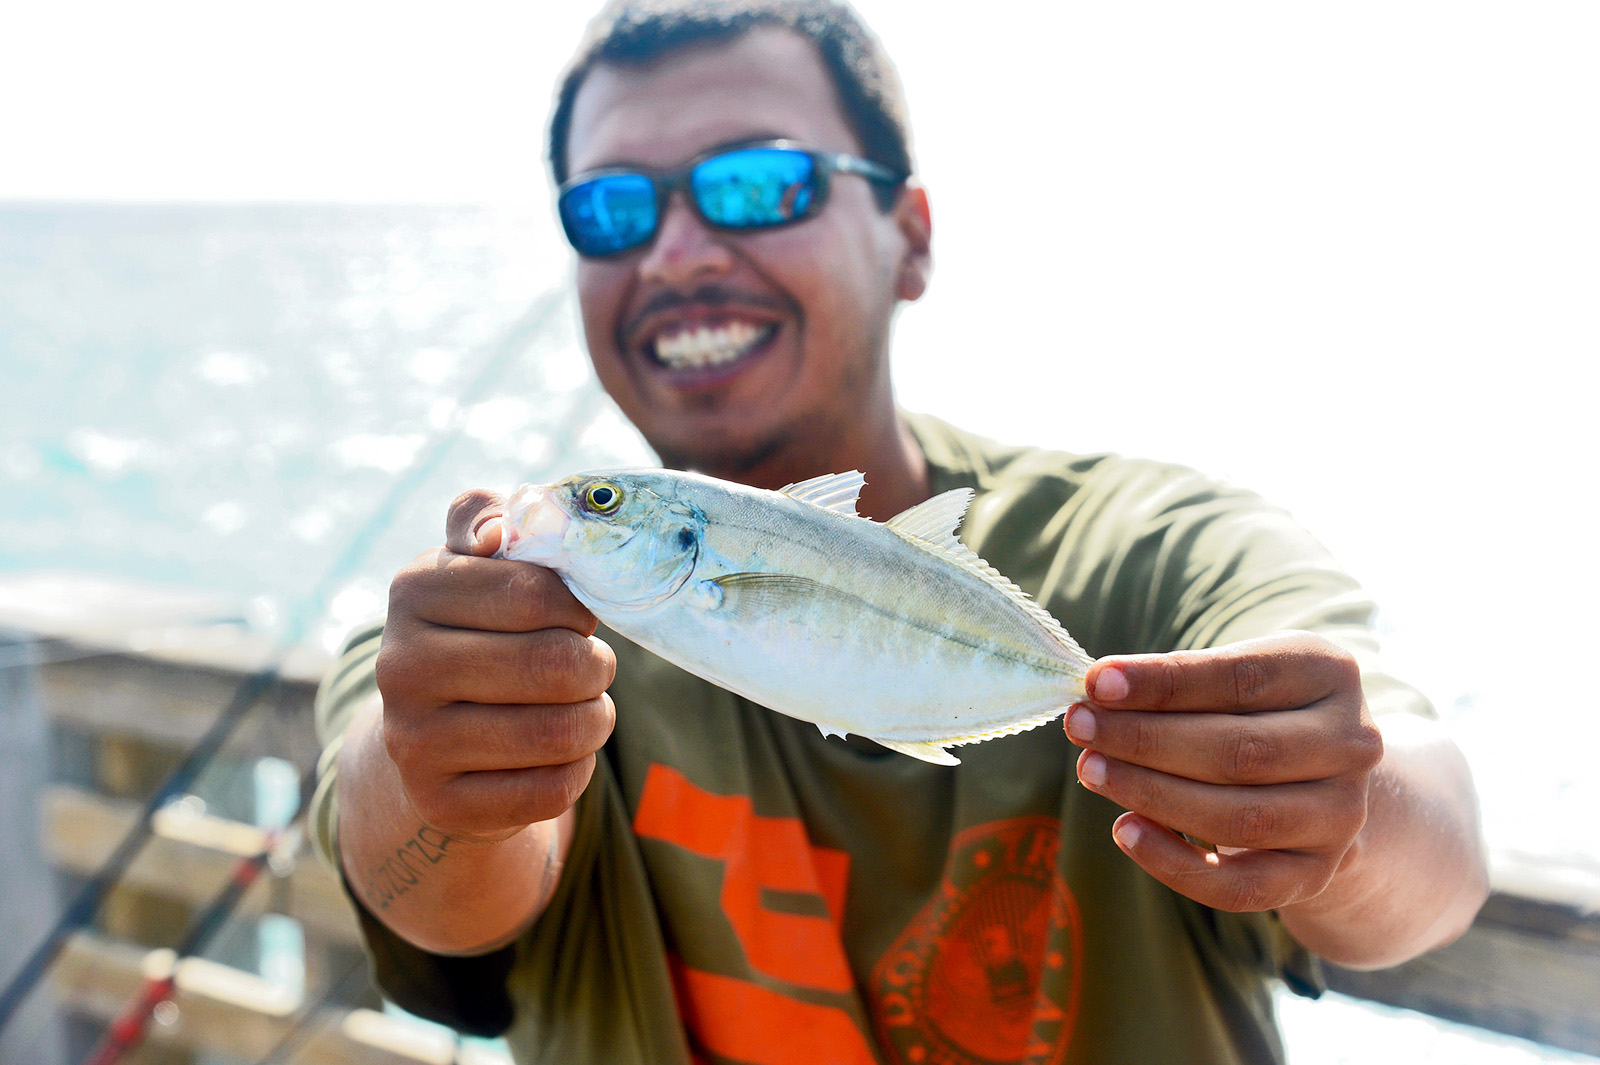 A lifestyle photo of a man with sunglasses- smiling as he shows off a small fish he caught on the pier in West Palm beach, Florida.